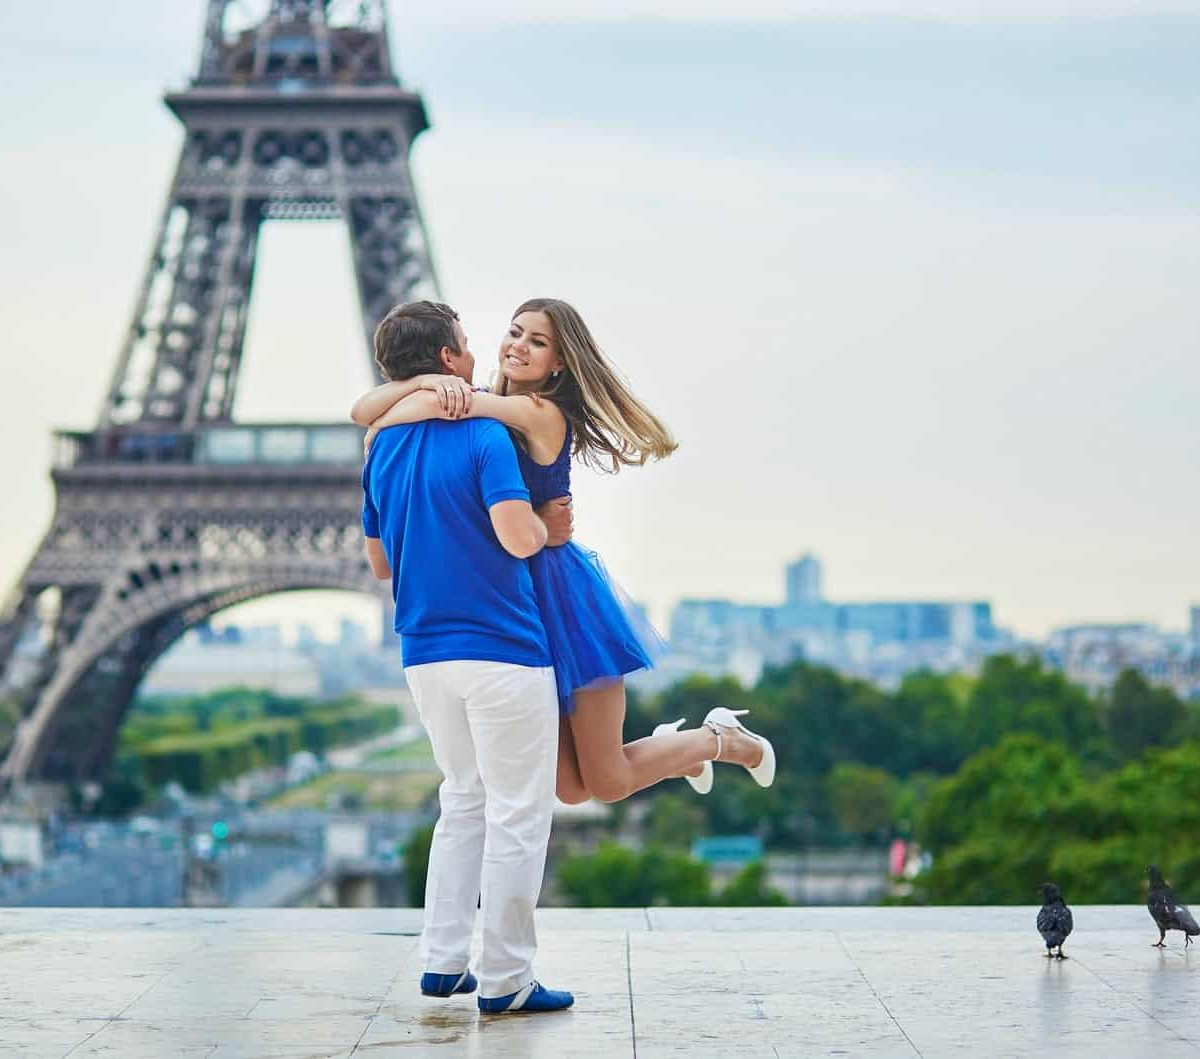 Canva Beautiful Young Couple In Paris 2 Min - Eco Europa Con Vuelos Bogotá | 17 Días | 2021